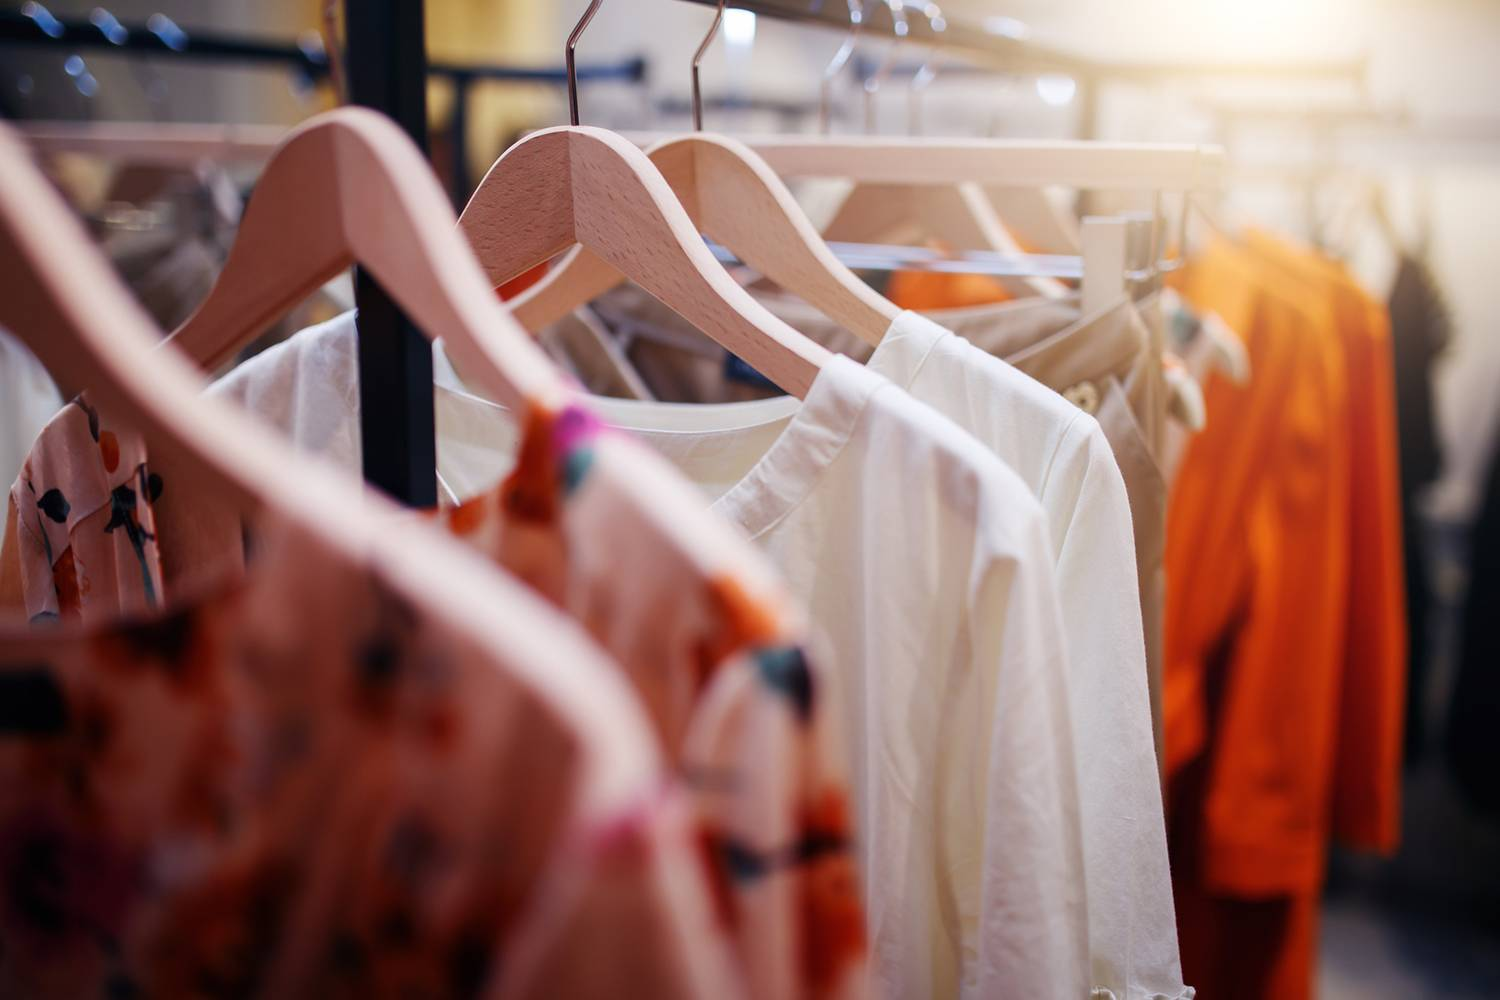 Retail clothing on hangers